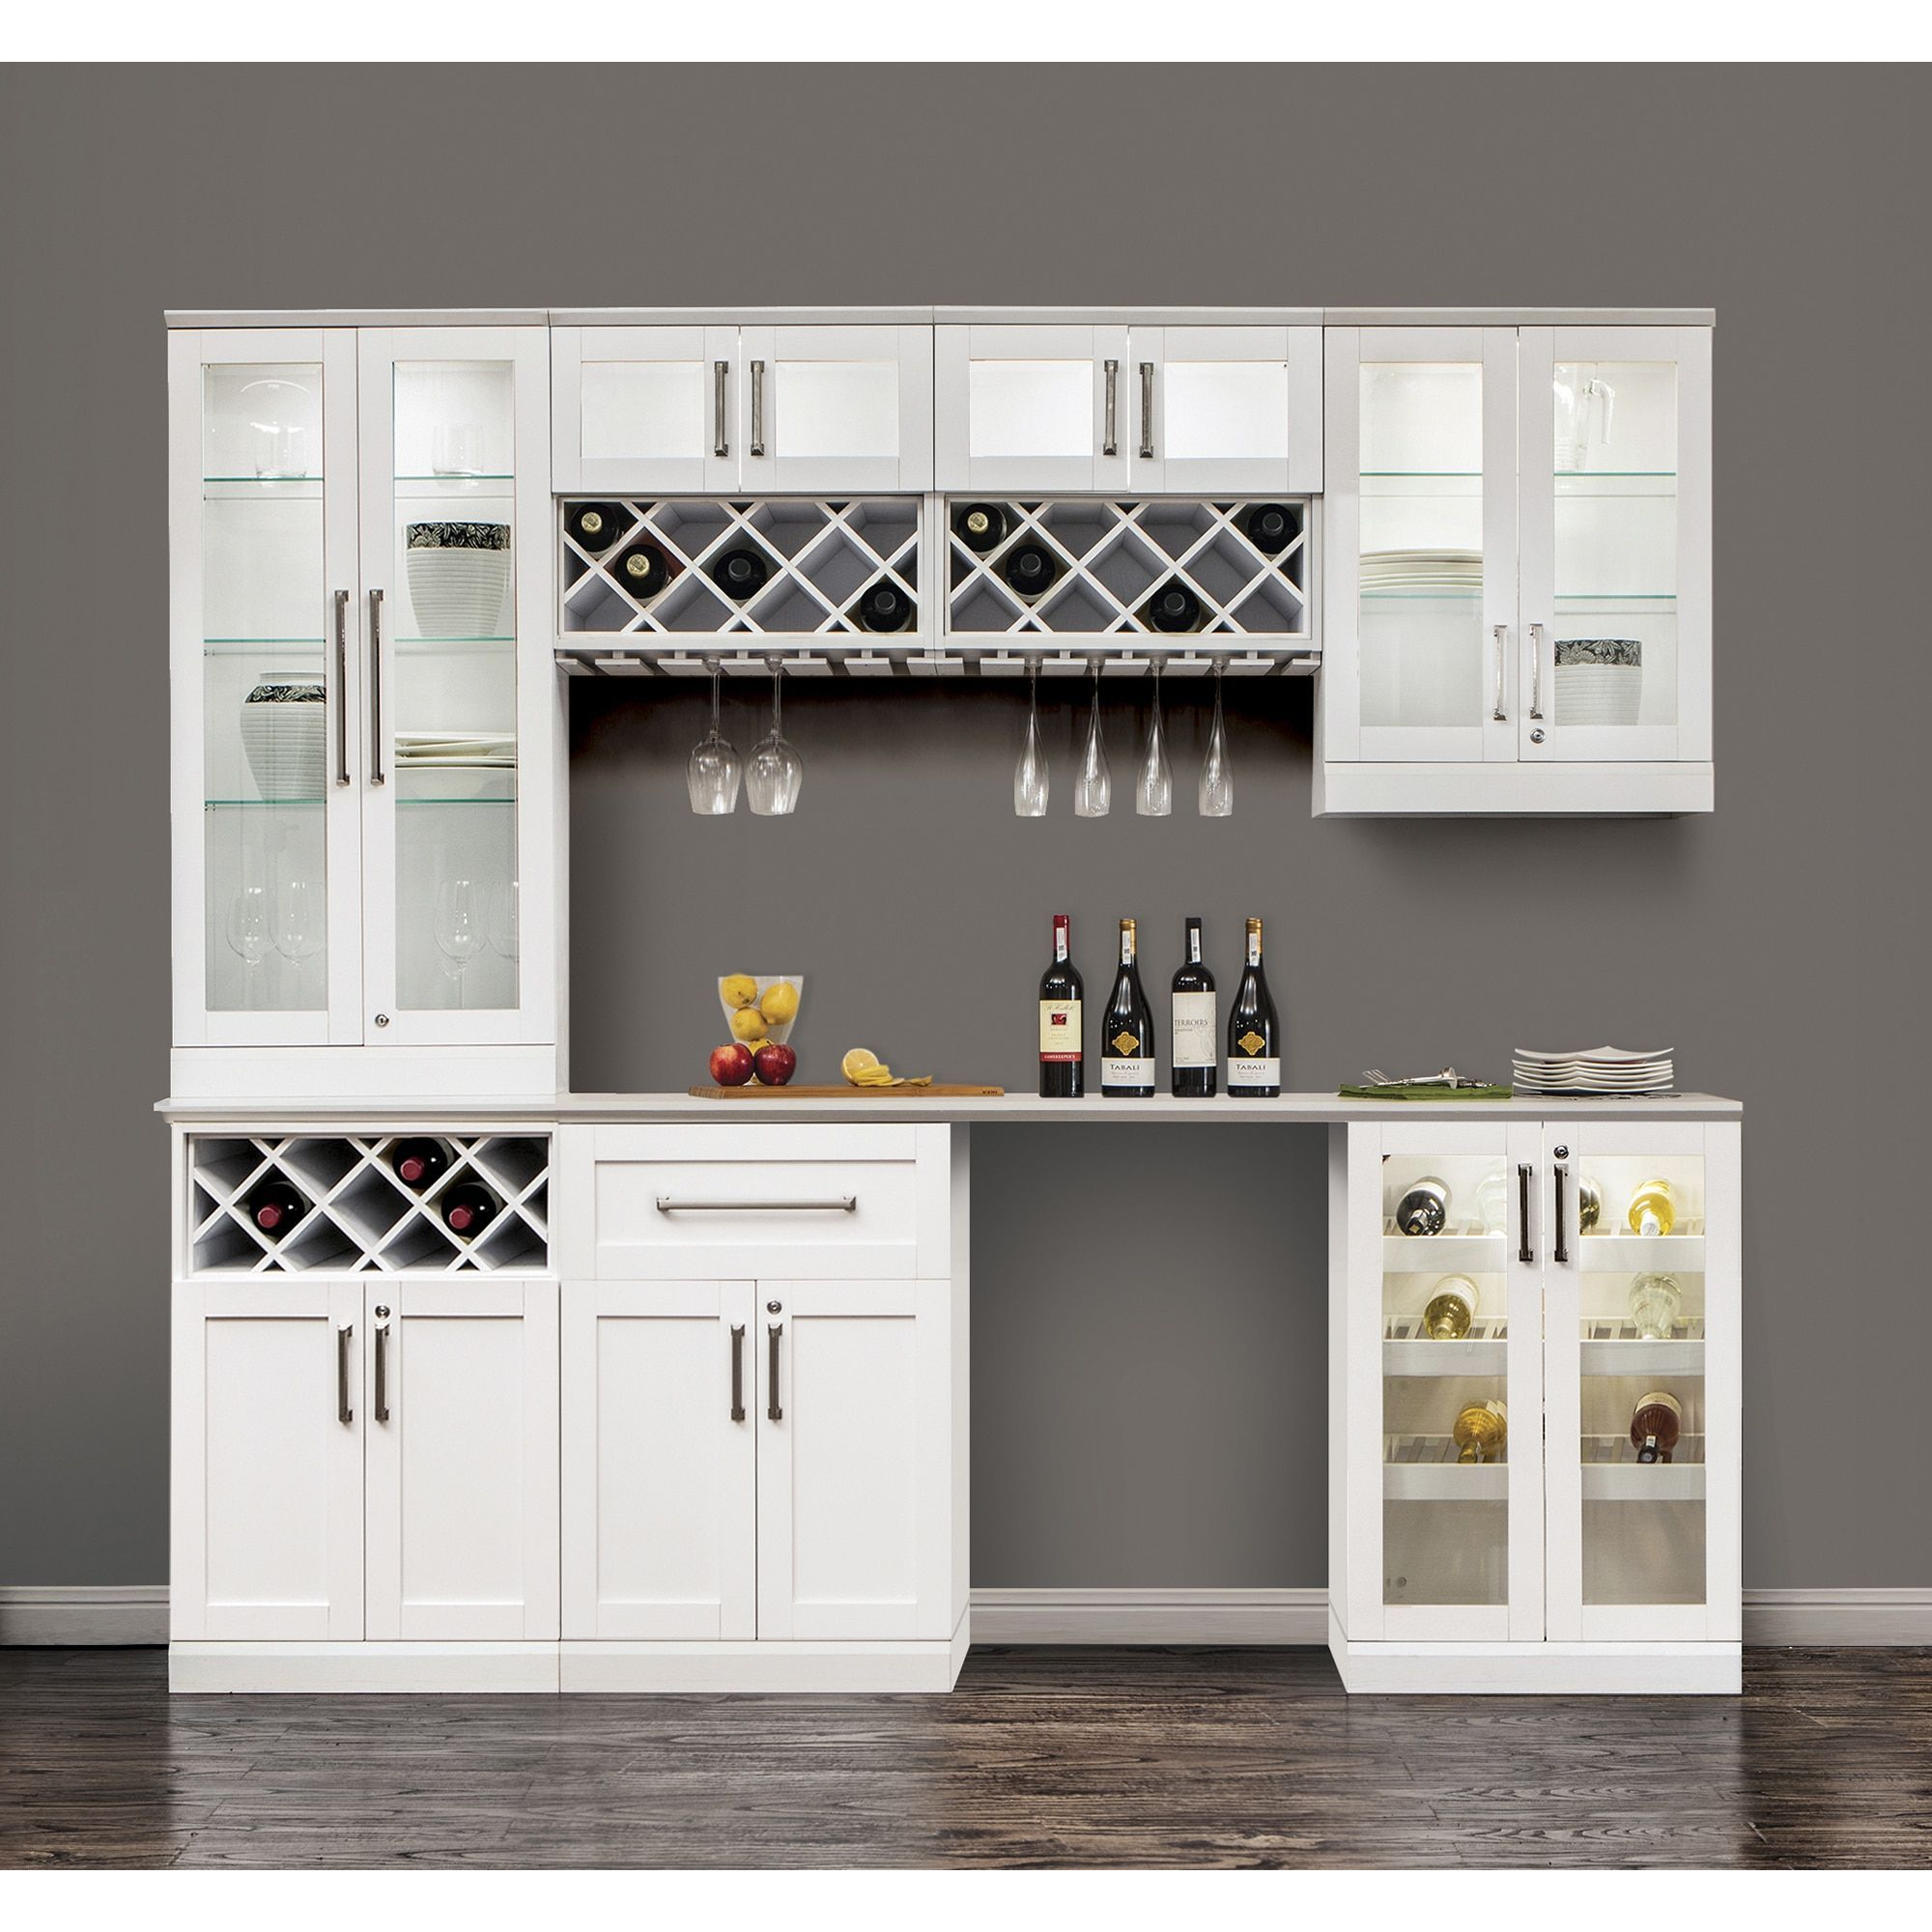 Fresh Wall Bar Cabinet Designs